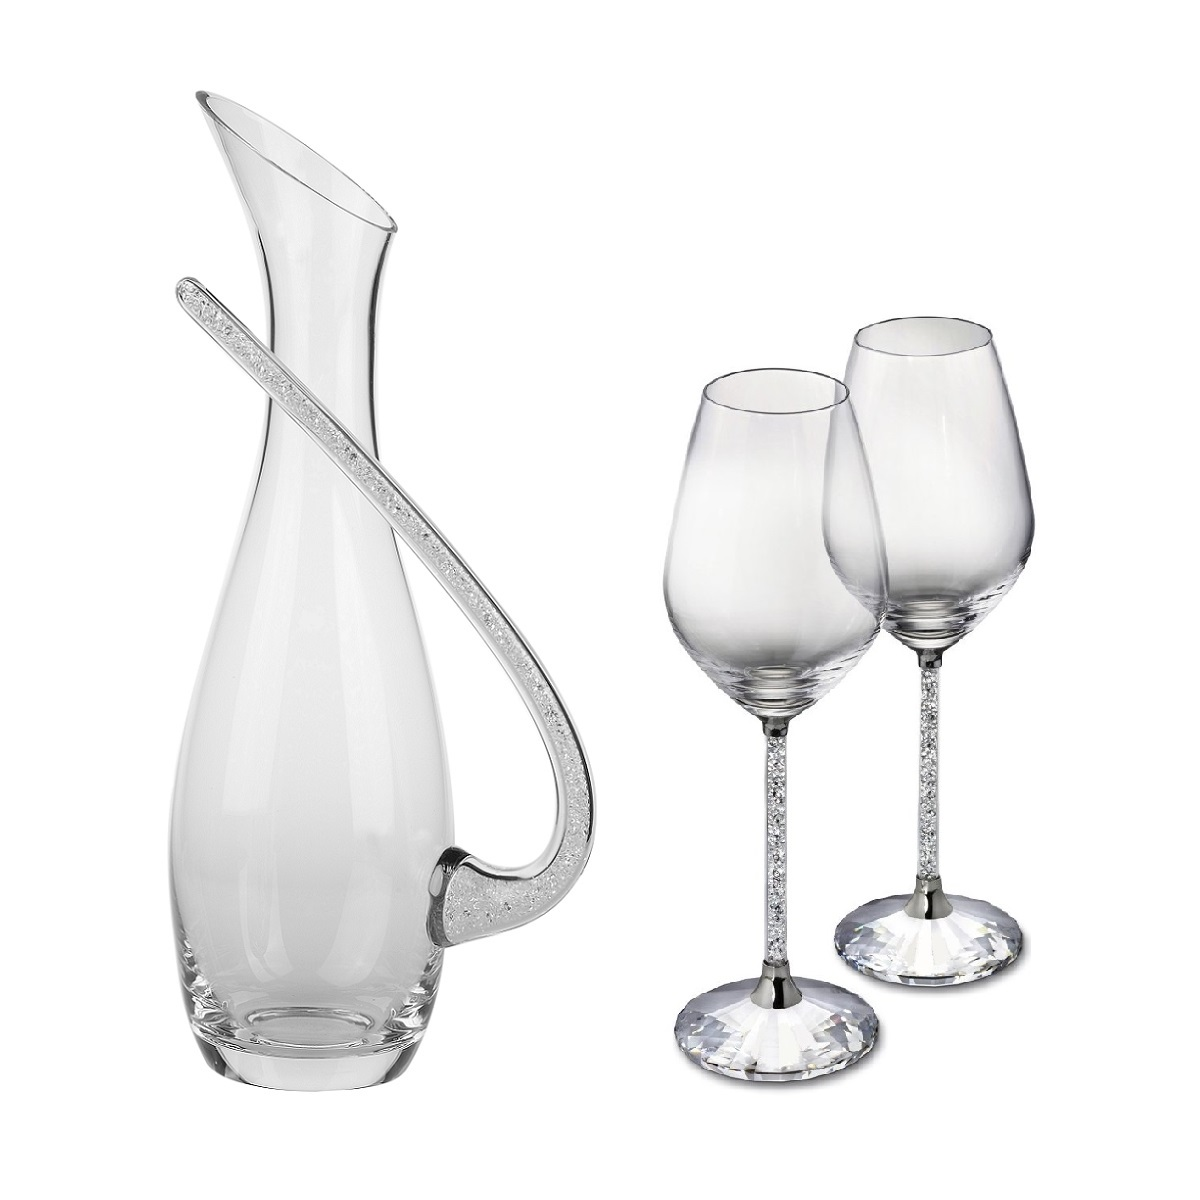 Decanter Wine Glas Pair Of Swarovski Crystal Filled Stem Wine Goblets Crystal Filled Decanter